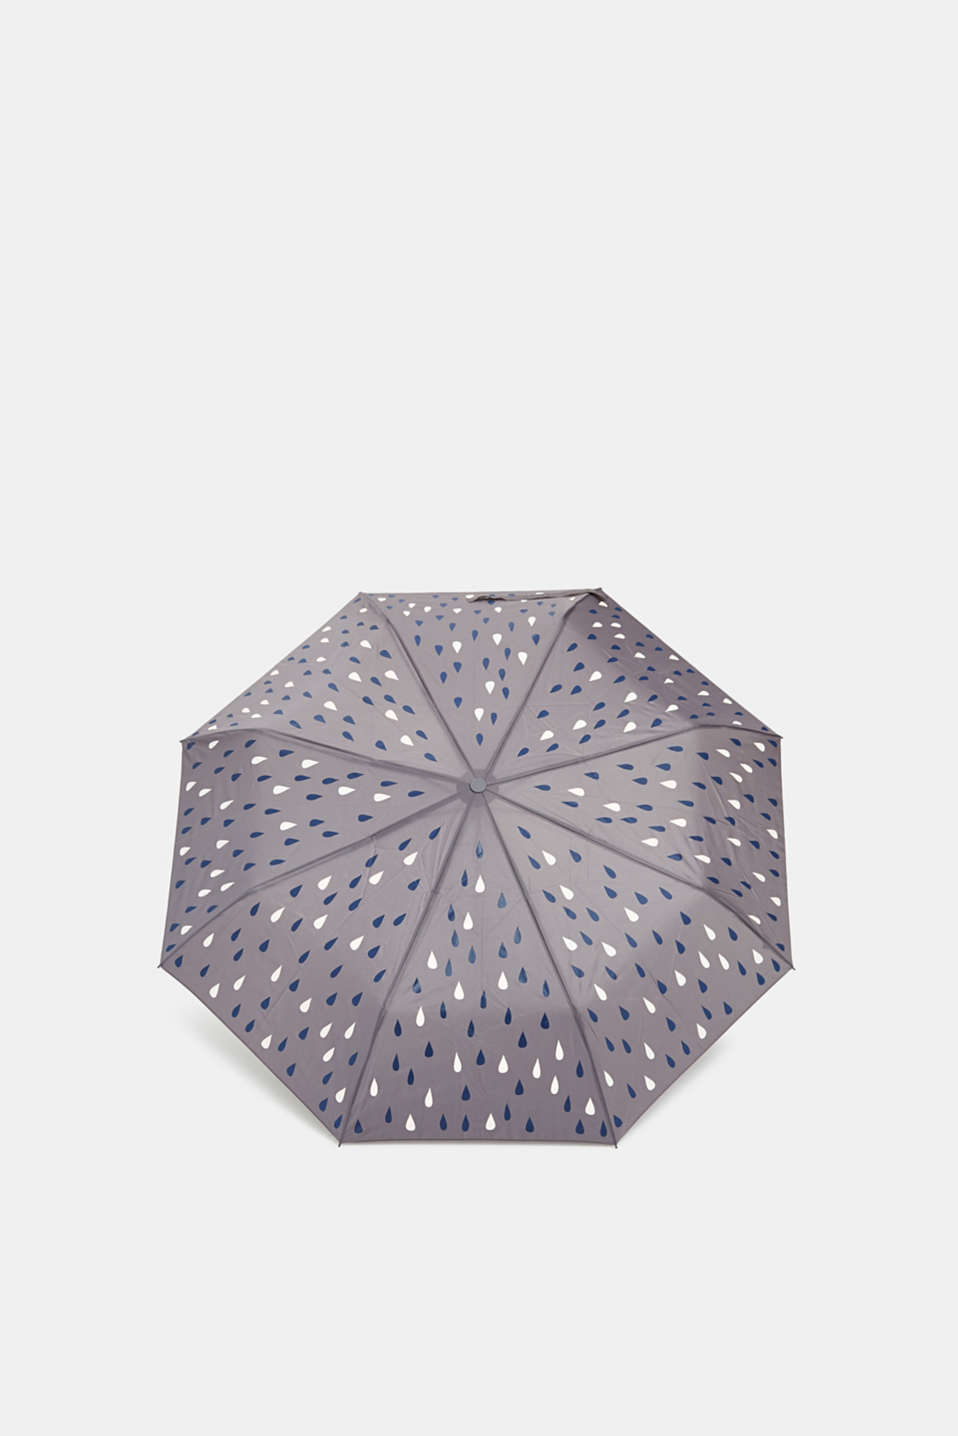 Esprit - Umbrella with a raindrop print